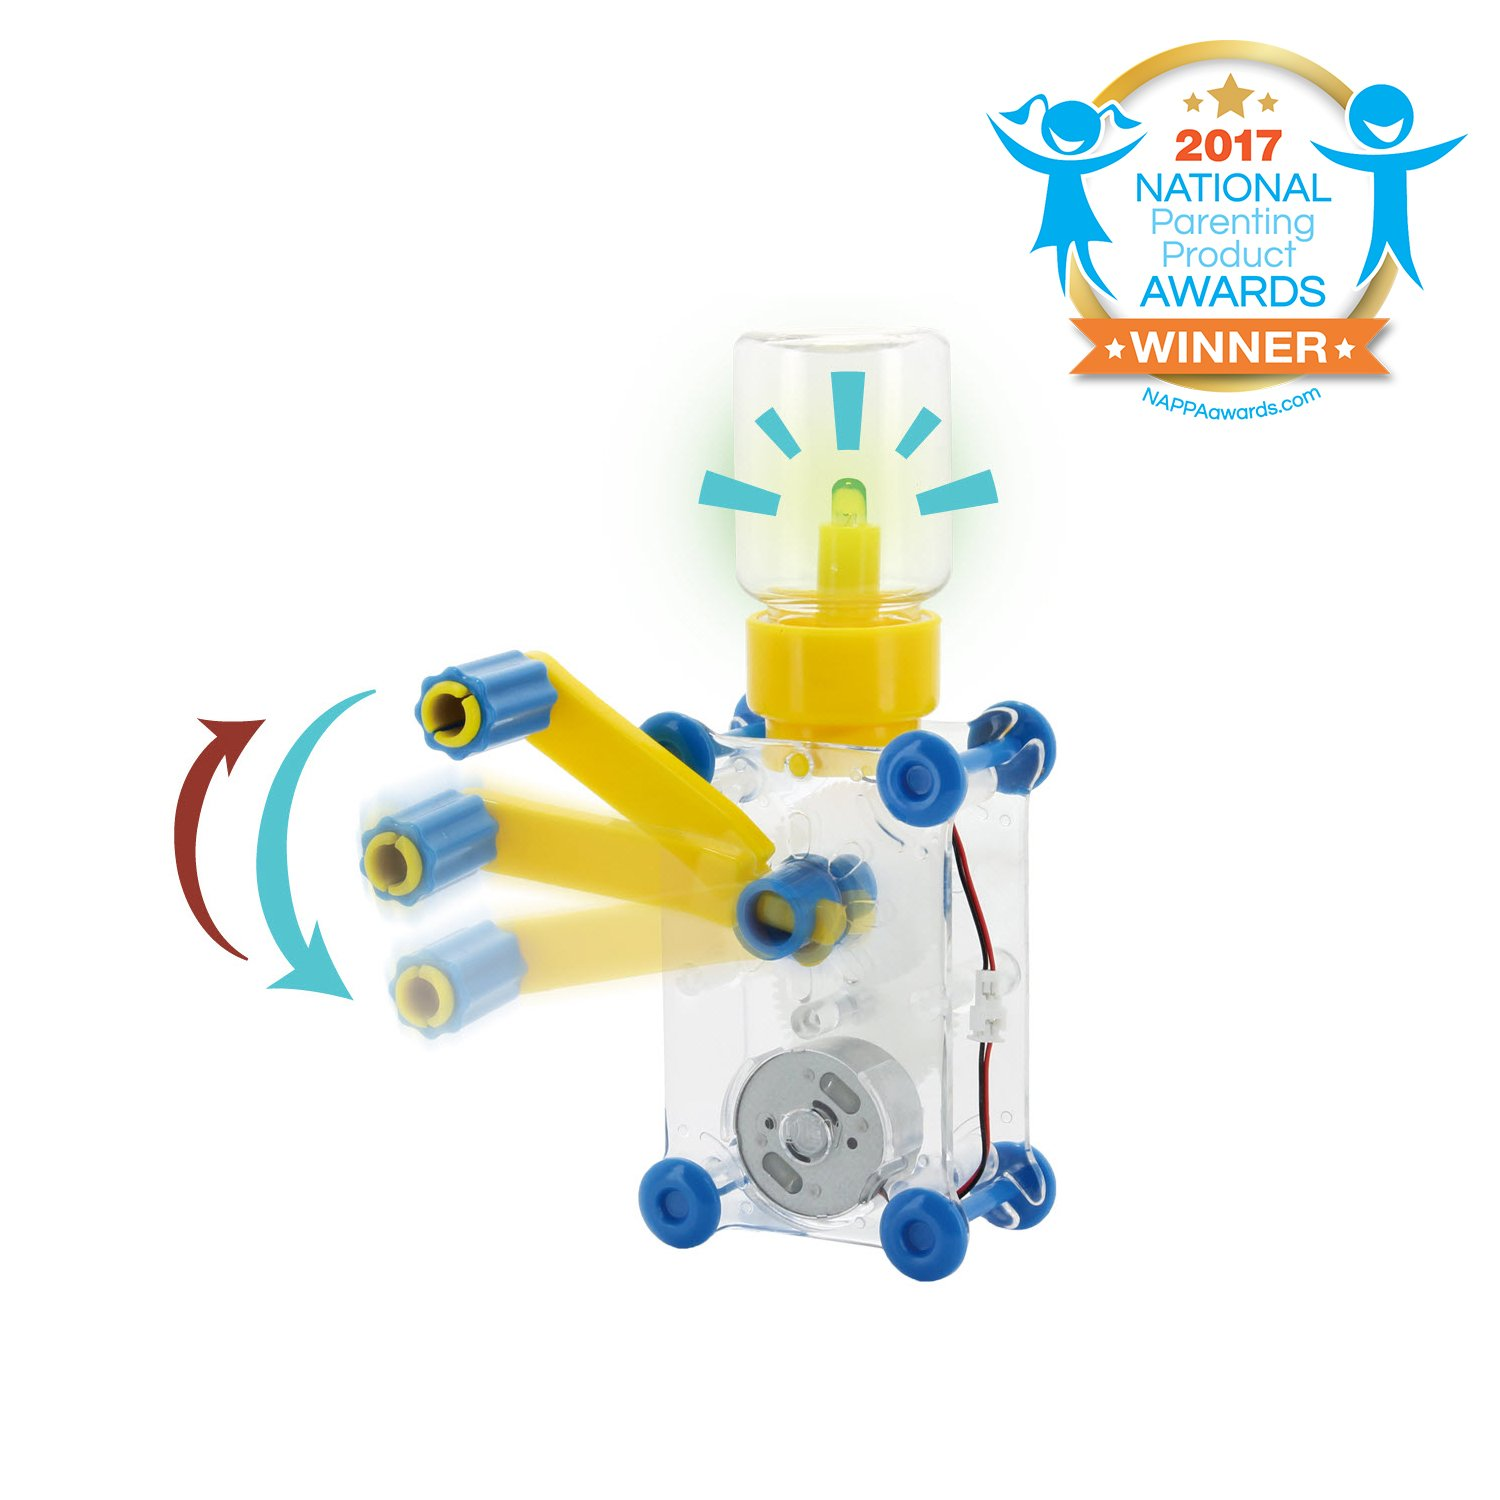 Tenergy ODEV Dynamo Lantern Educational STEM Building Toy, Hand Cranked Power Generator, Light Bulb Science Experiments Kits for Kids Age 8+